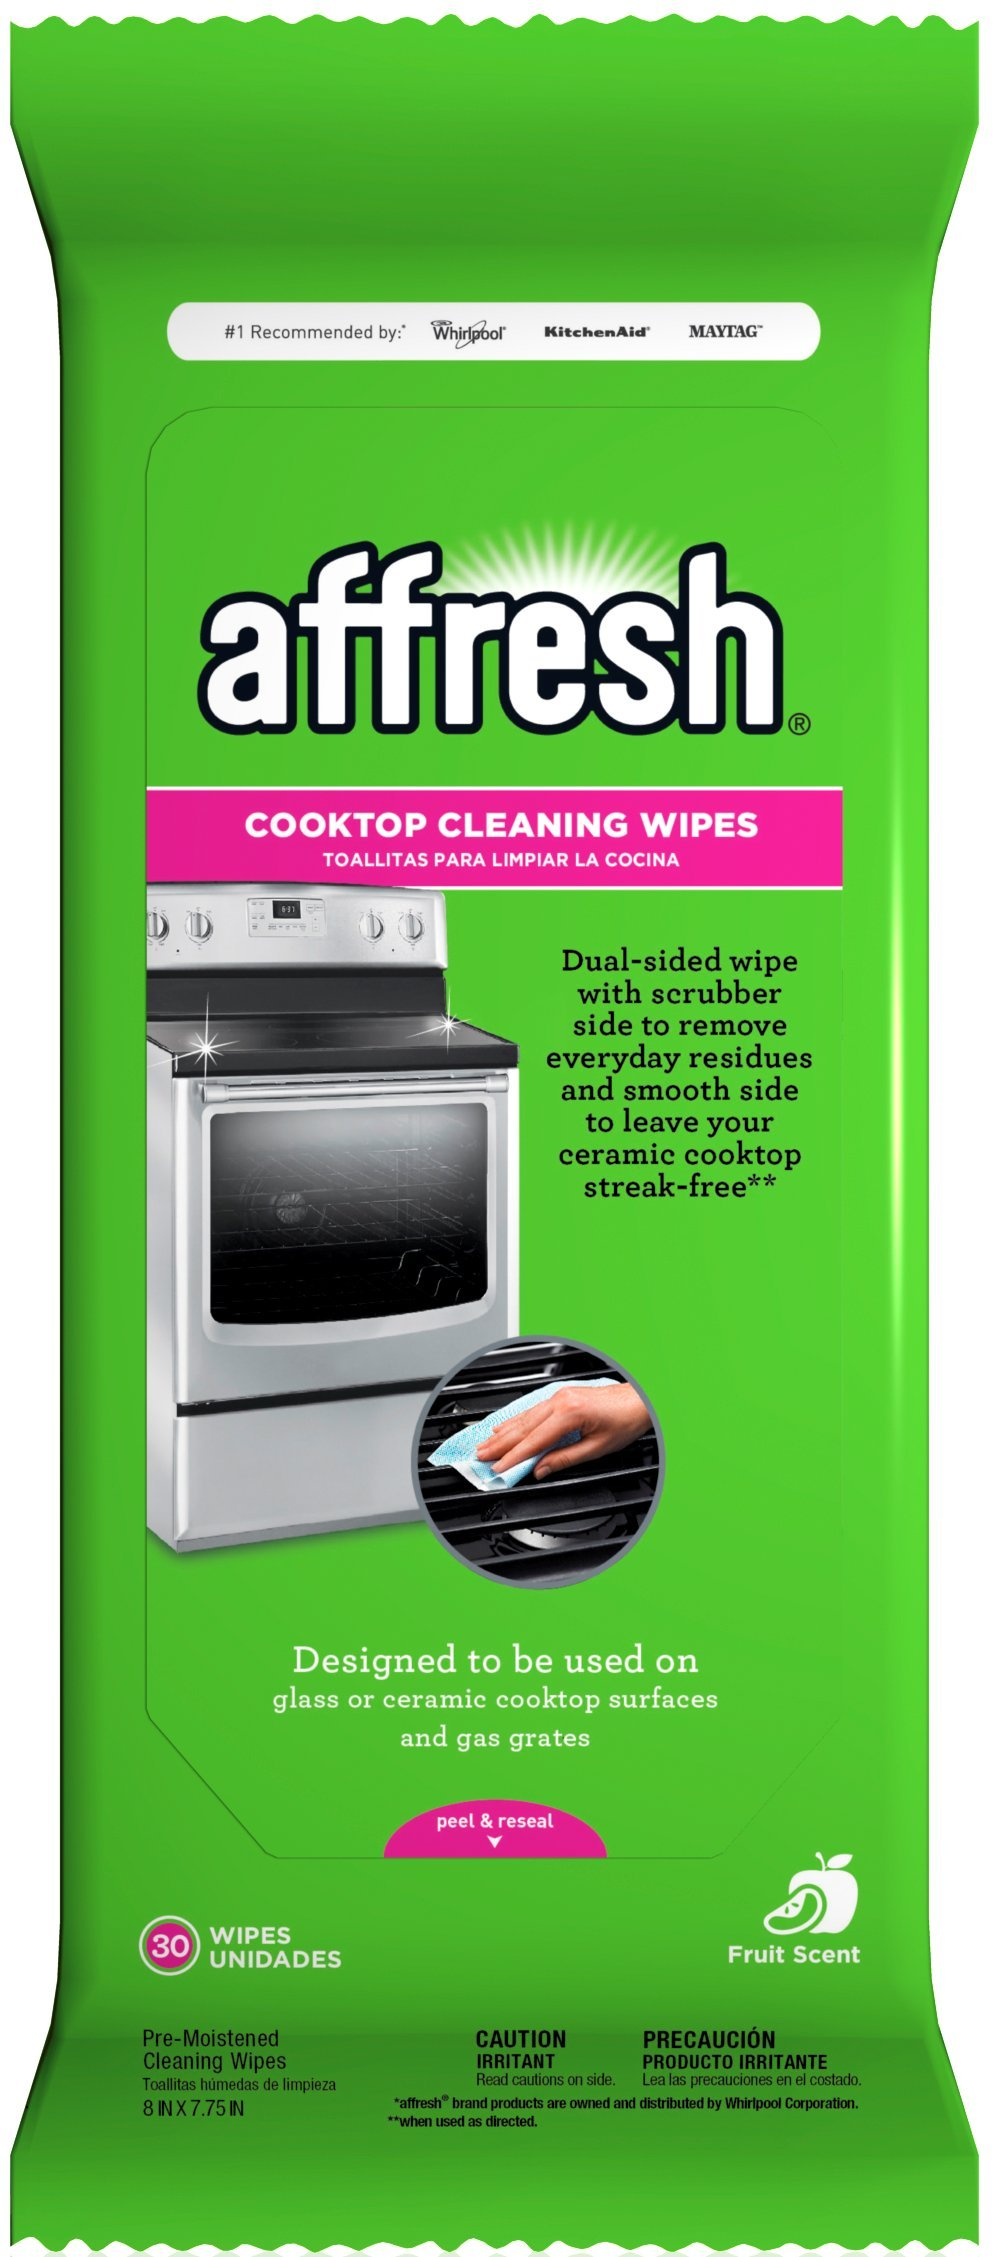 Affresh W10539770 Cooktop Cleaning Wipes, 1 Pack, 30 Piece